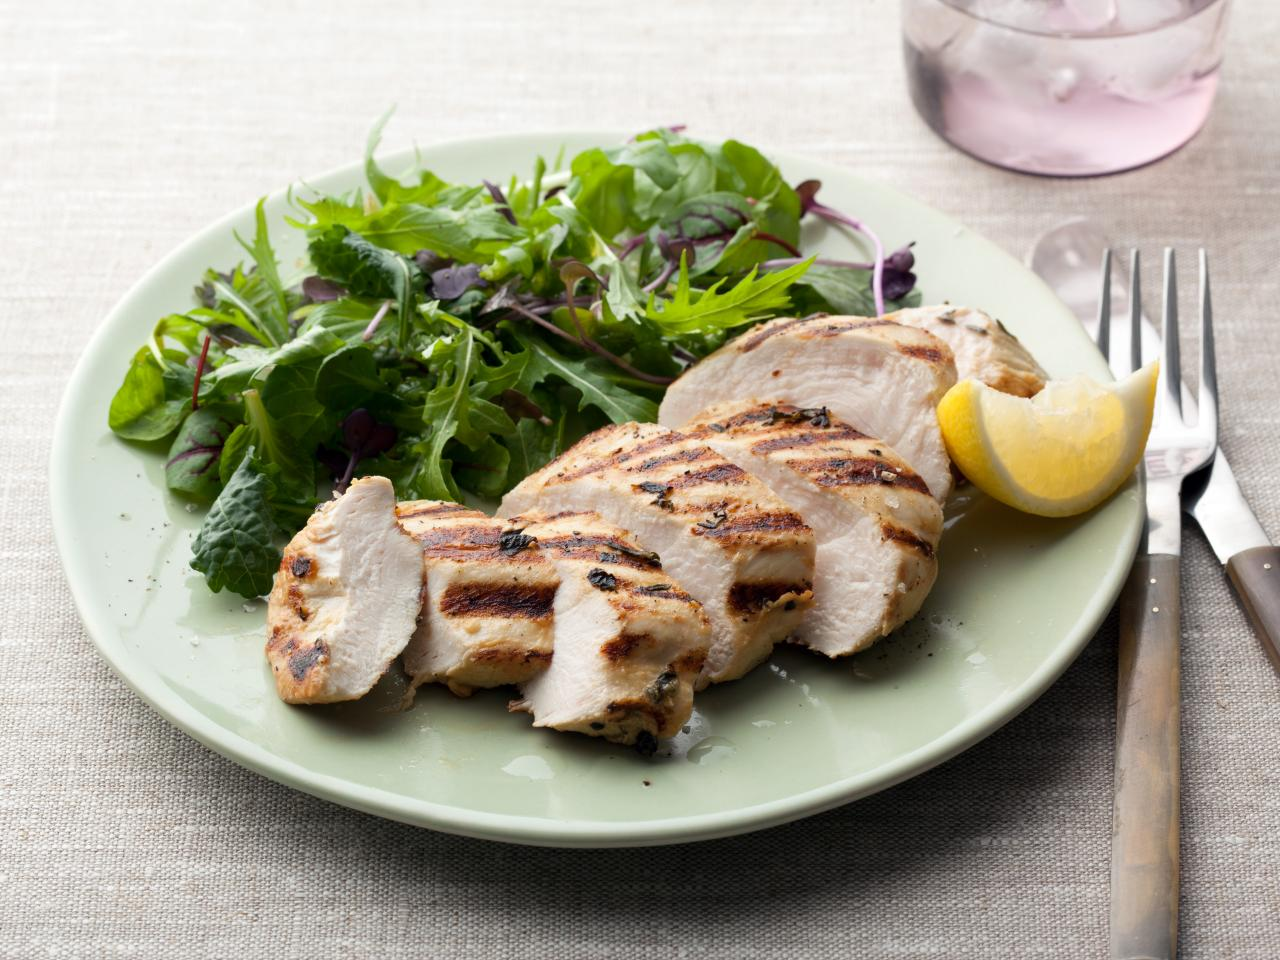 What Is a Healthy Amount of Chicken Breast to Eat?